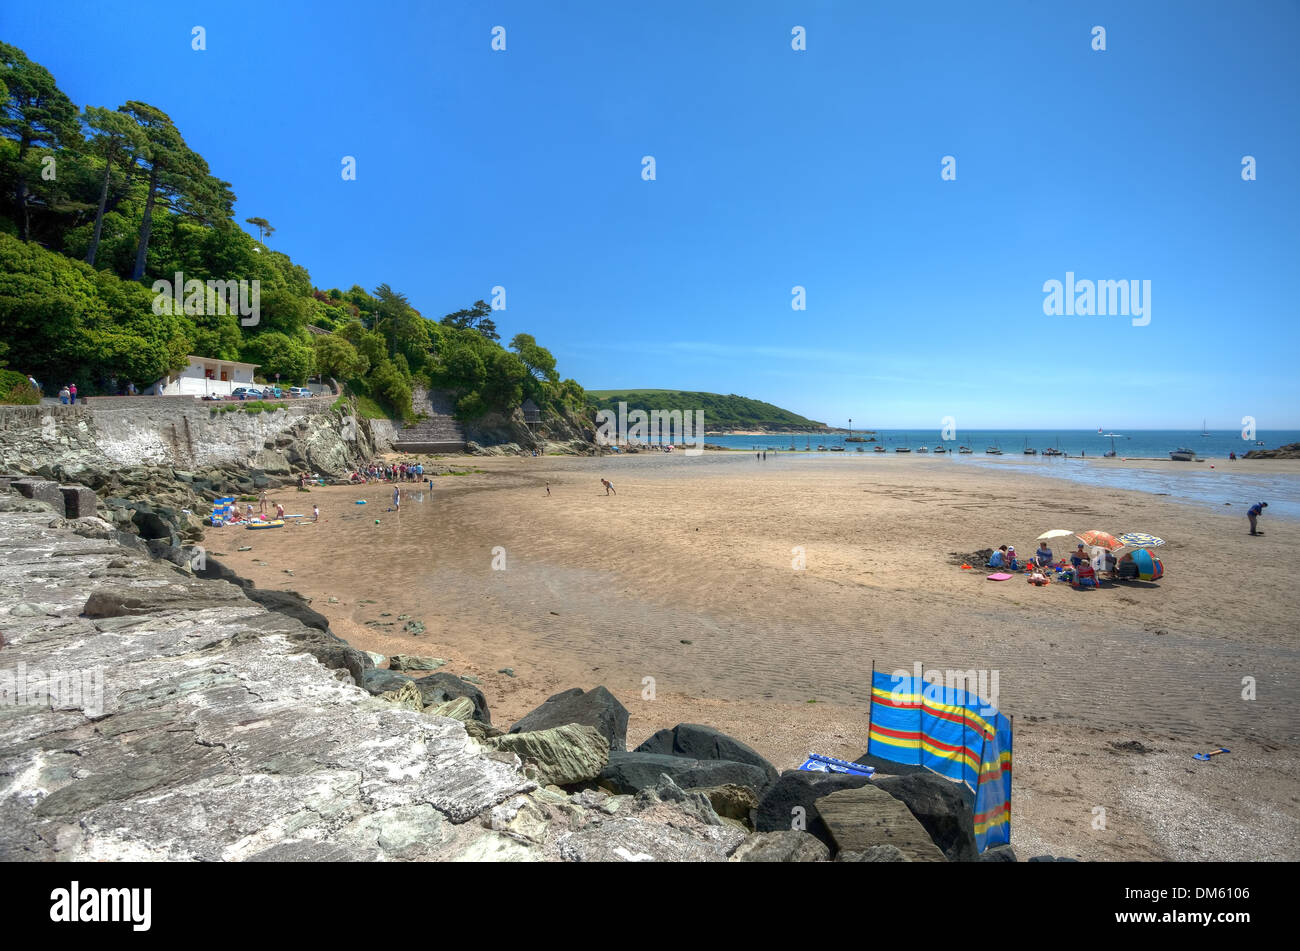 Summertime at North Sands beach, Salcombe, Devon, England. - Stock Image